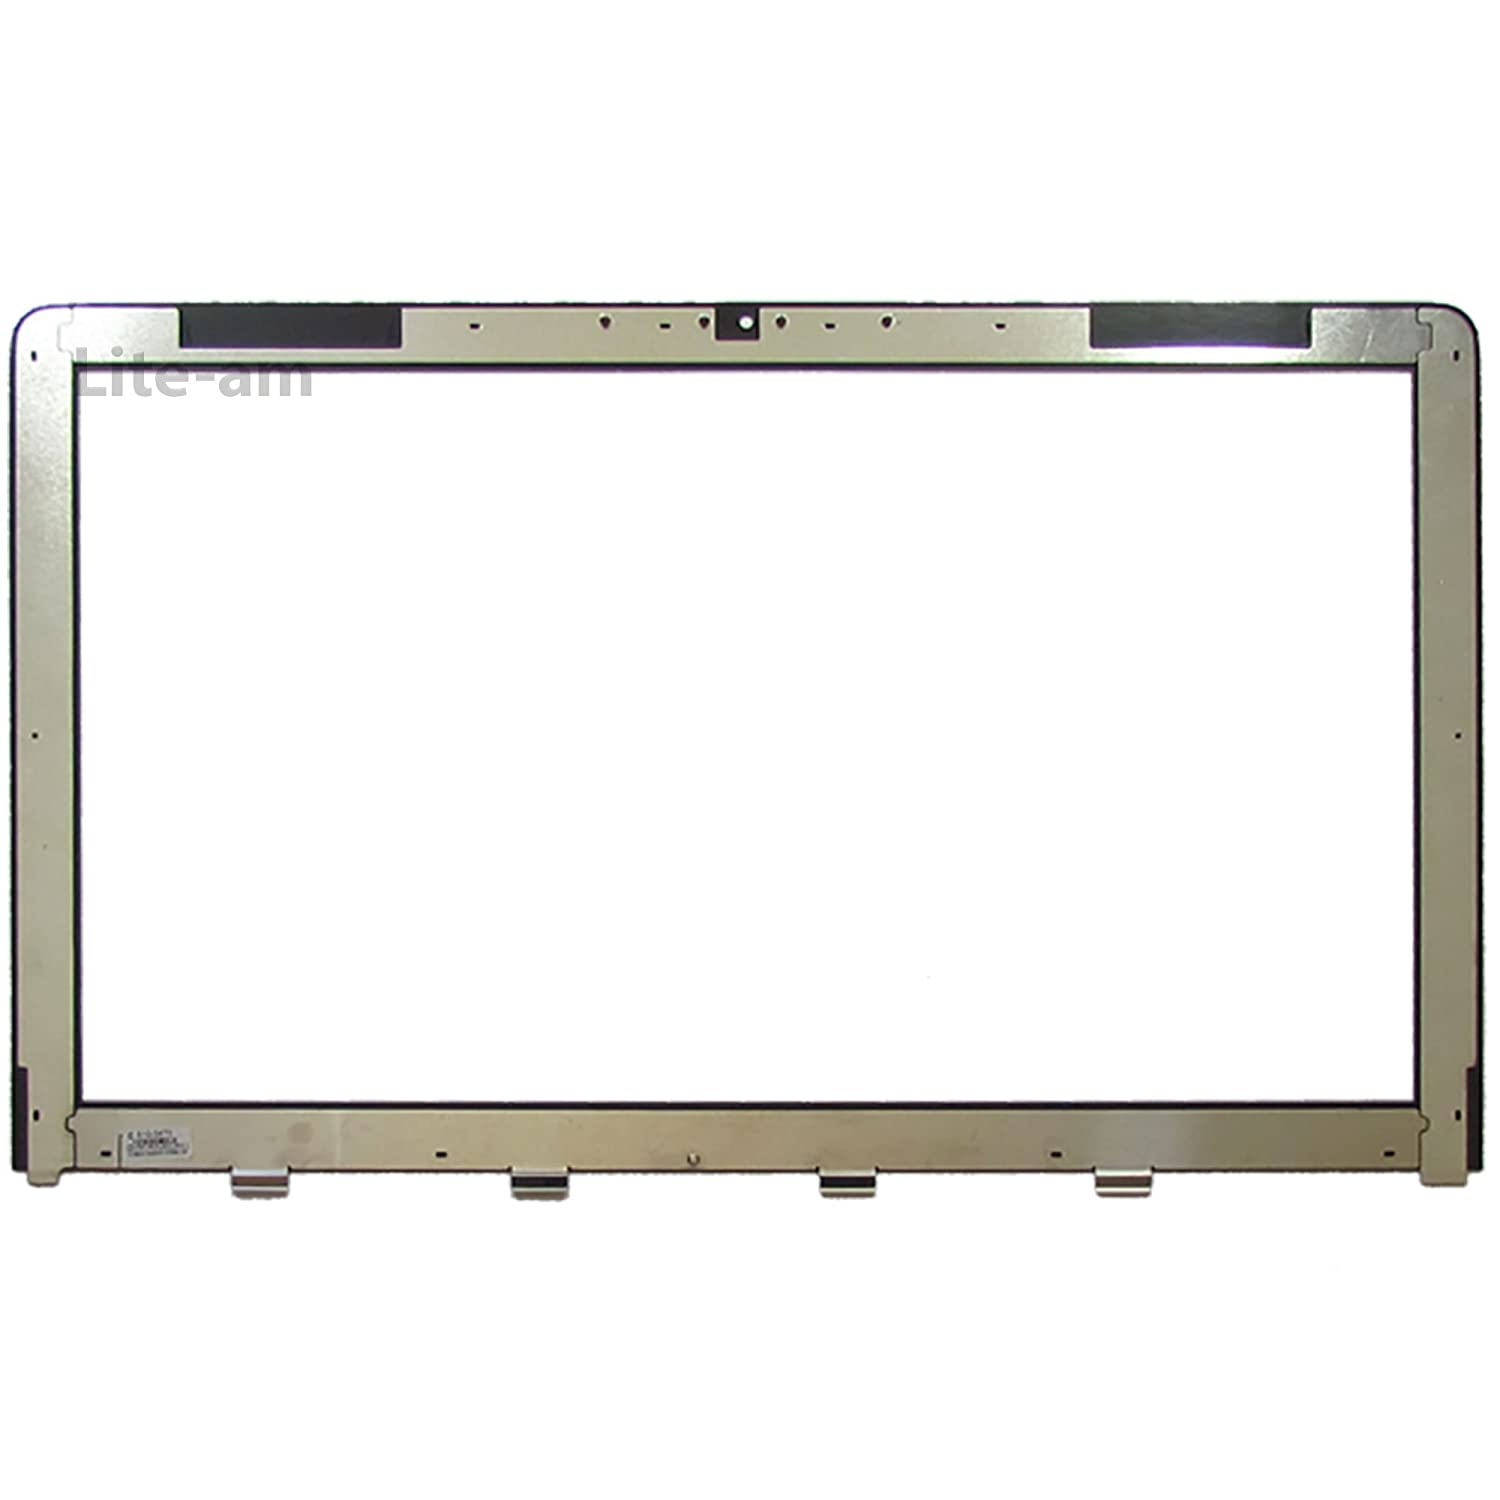 Lcd Screen Front Glass Cover Replacement for Apple iMac A1311 810-3553 Mid 2011